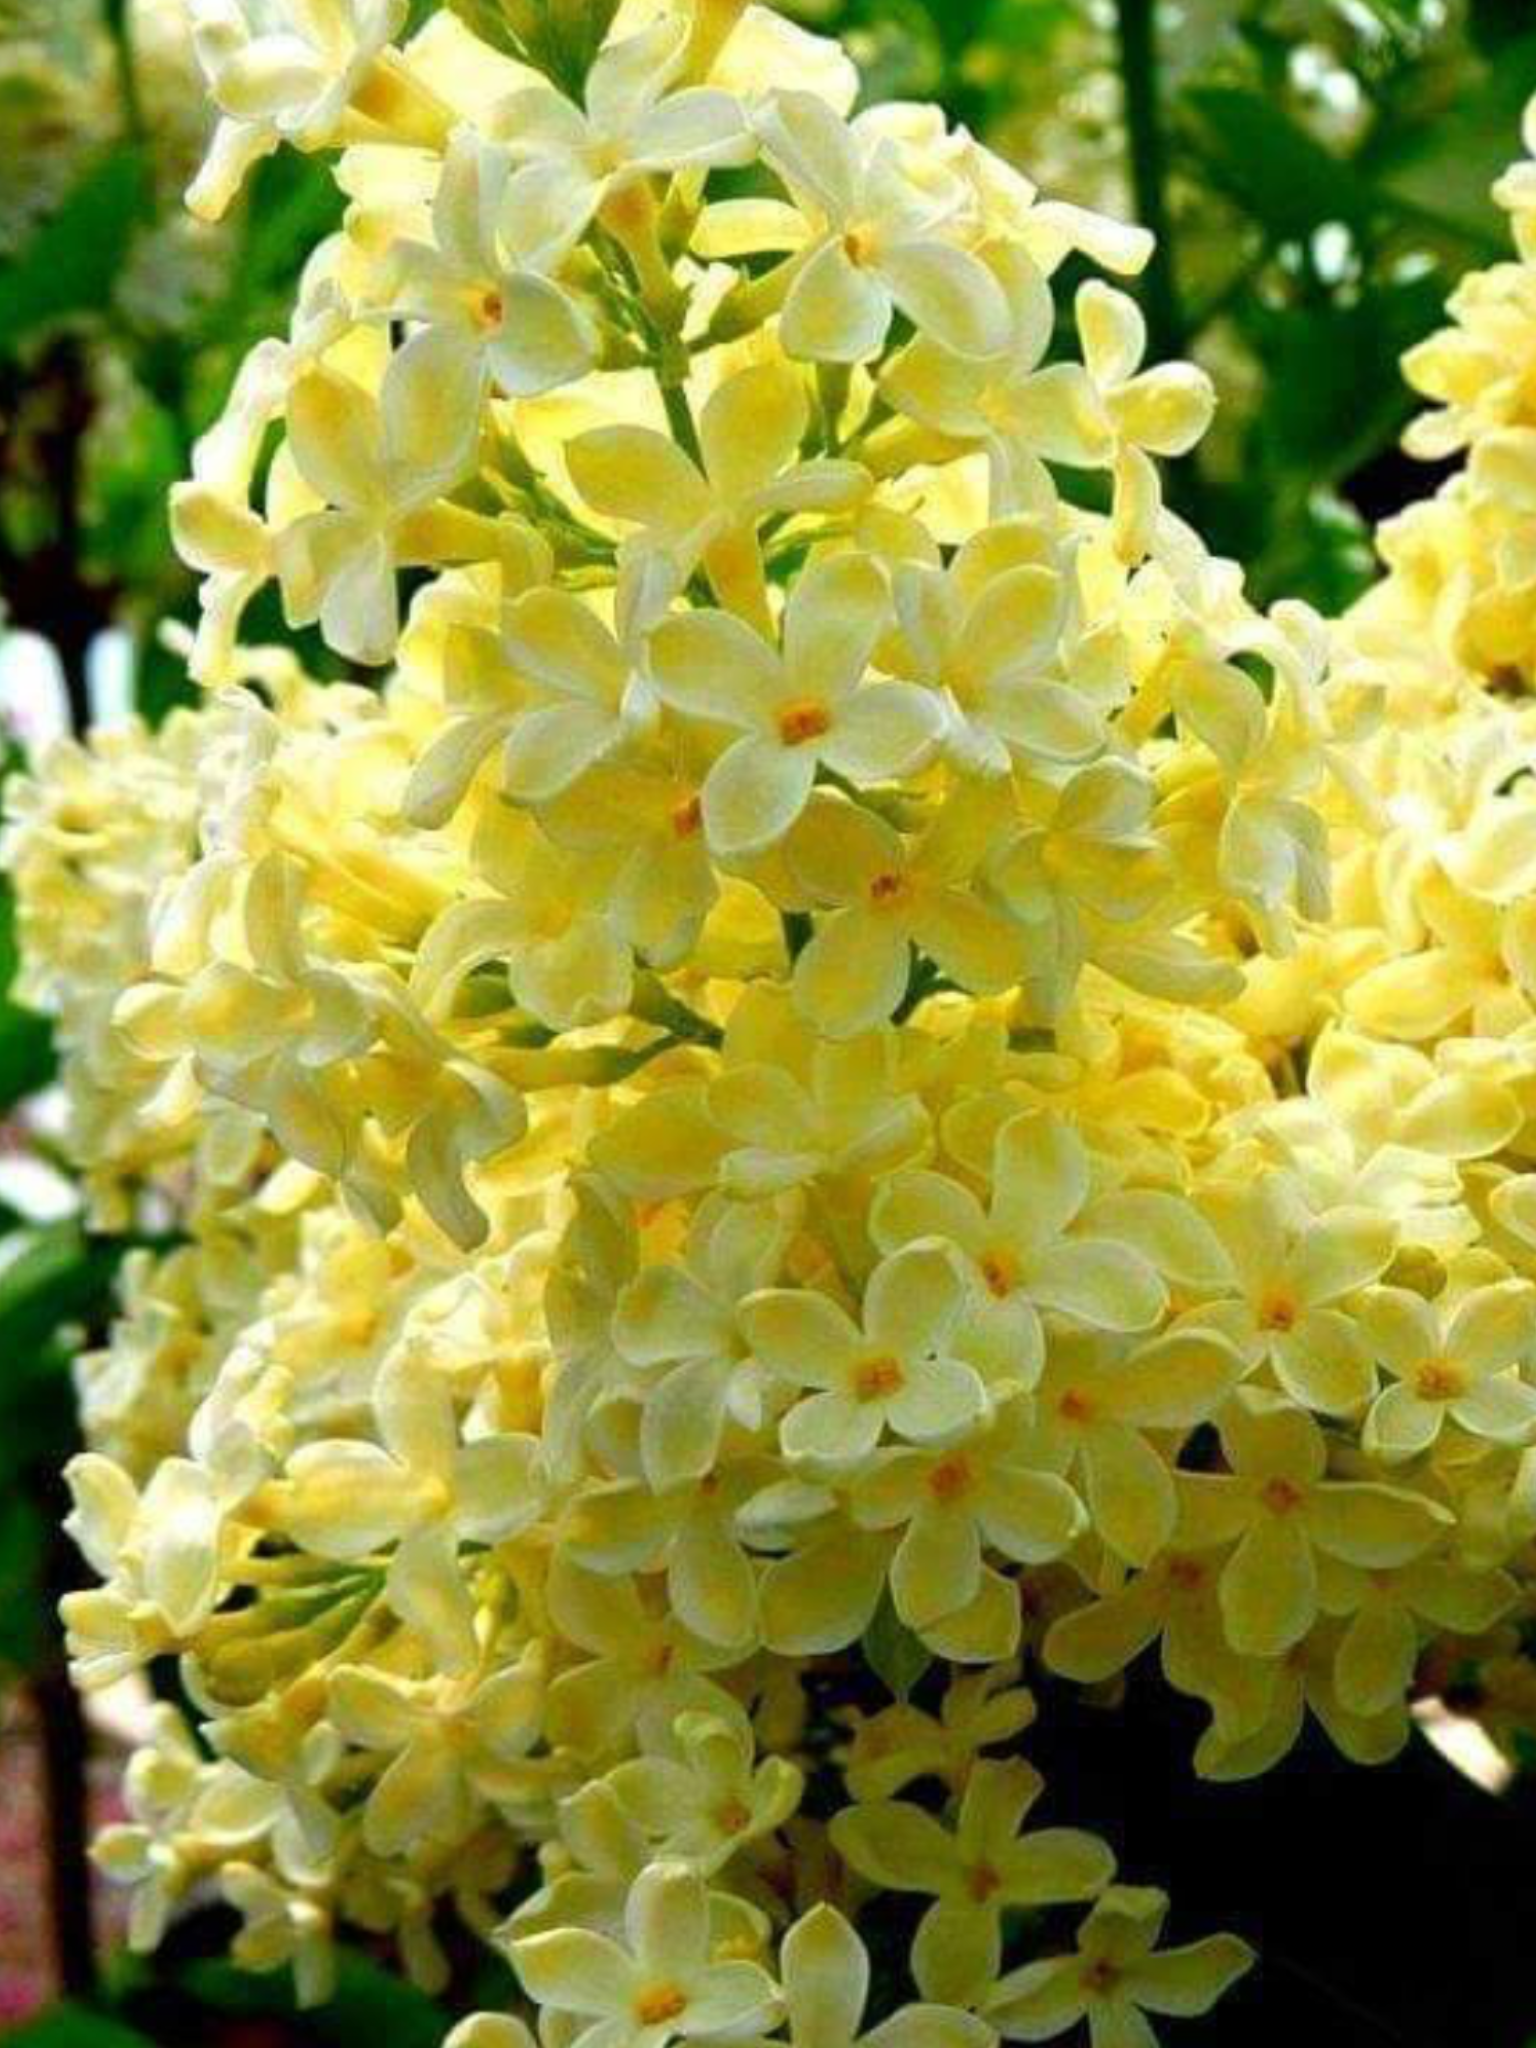 Yellow Lilacs I Beleive The Real Colour Is More Of A Creamy Pale